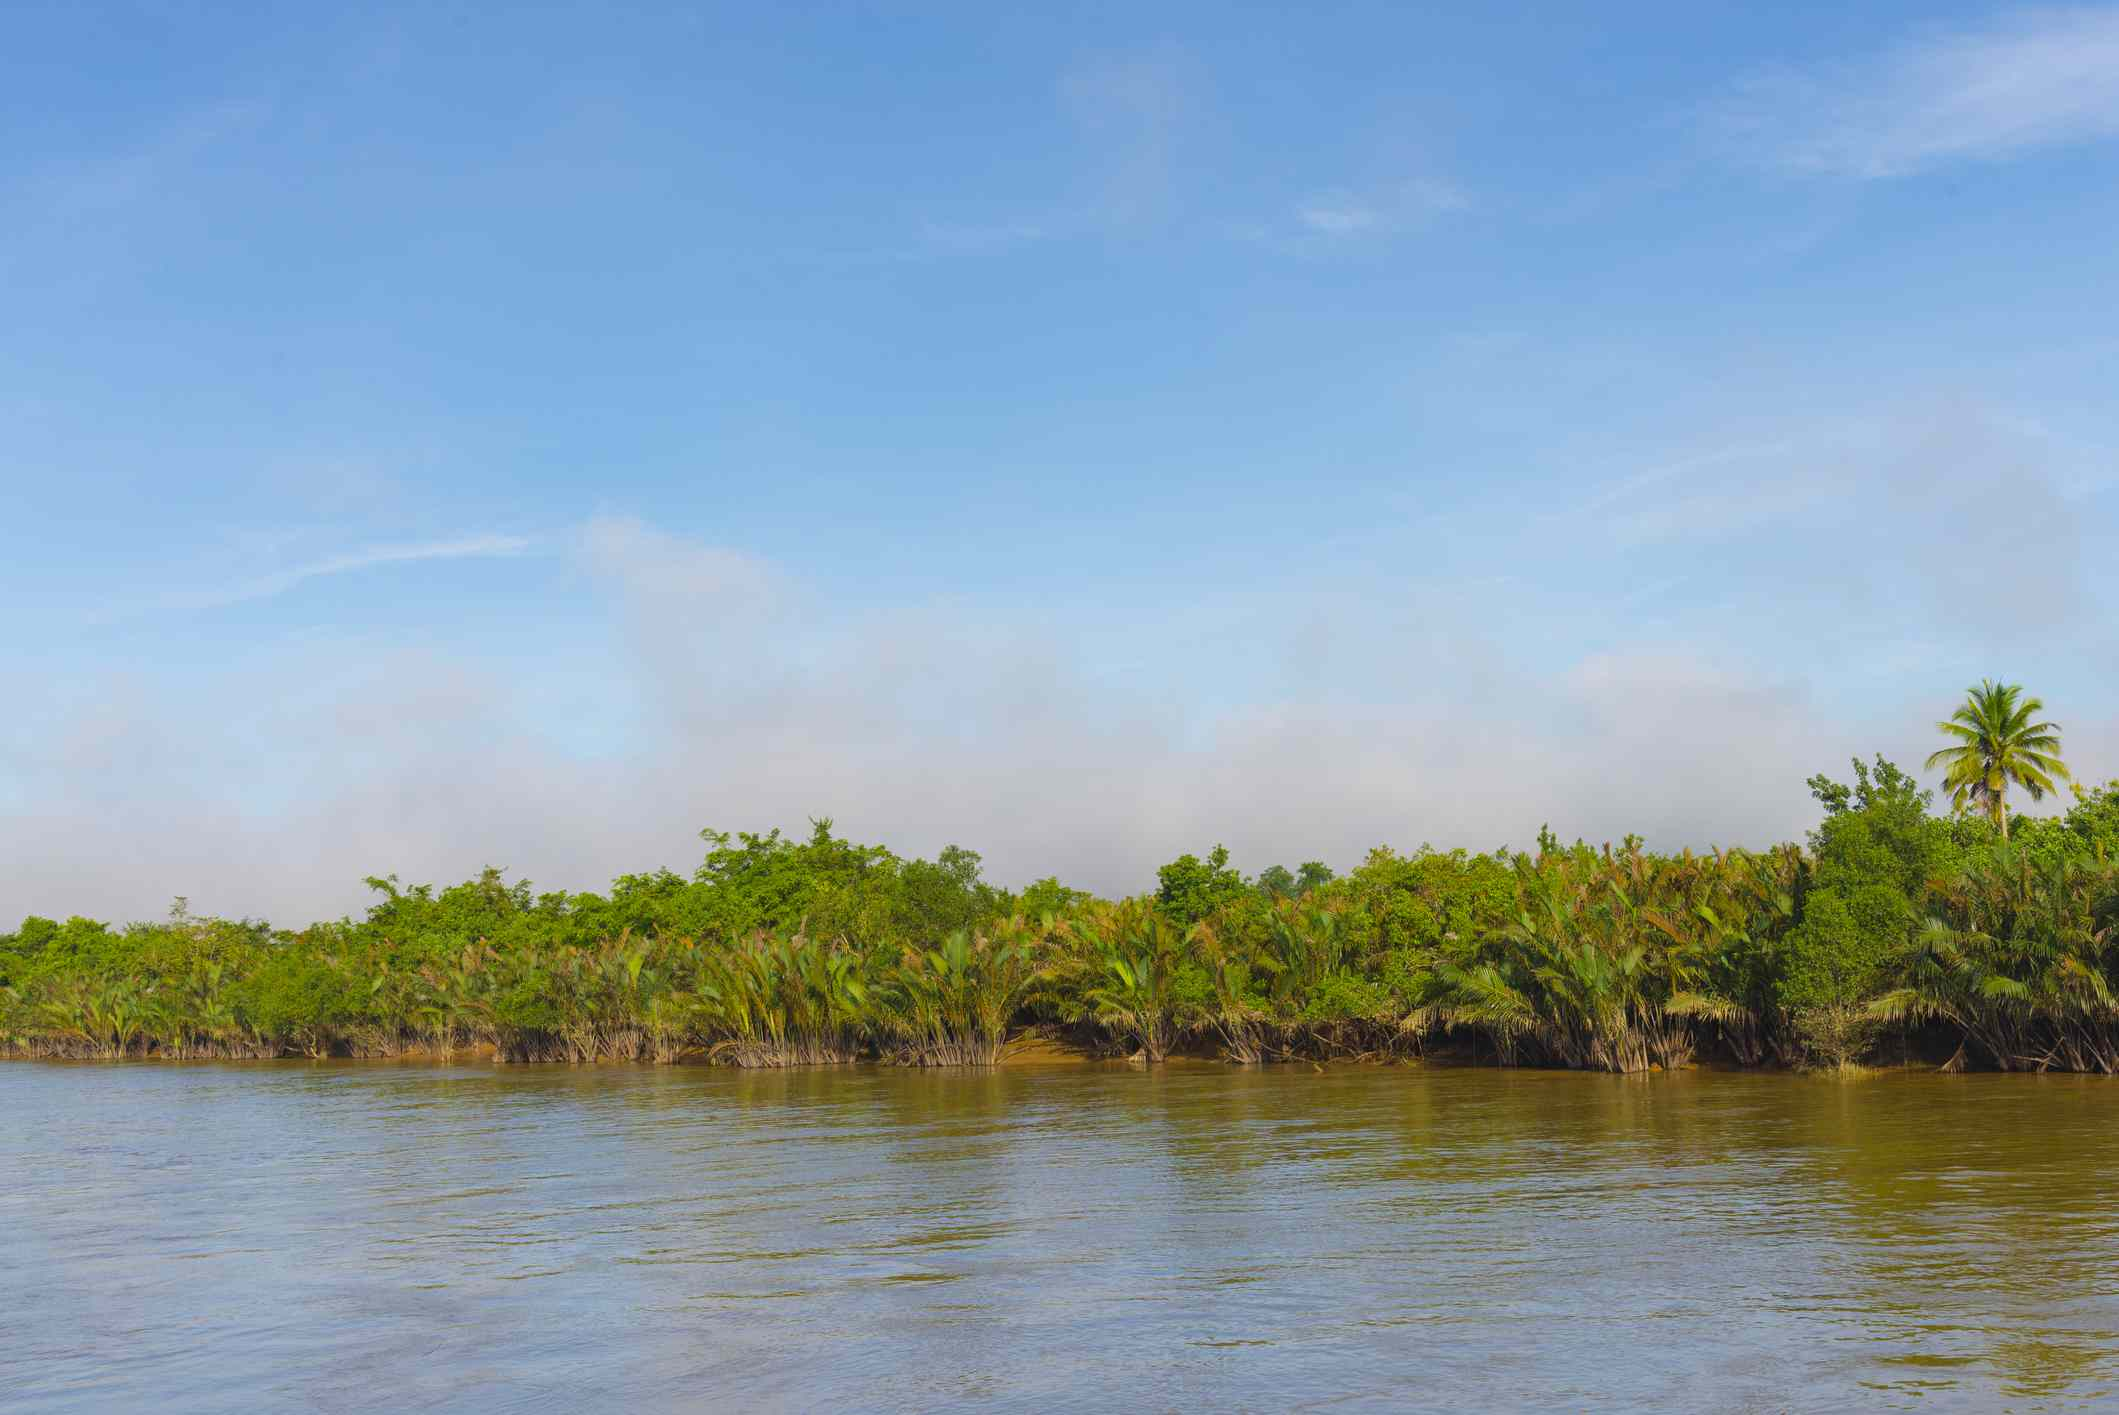 View of mangrove trees against a blue sky across a body of water at Oleta River State Park in Miami